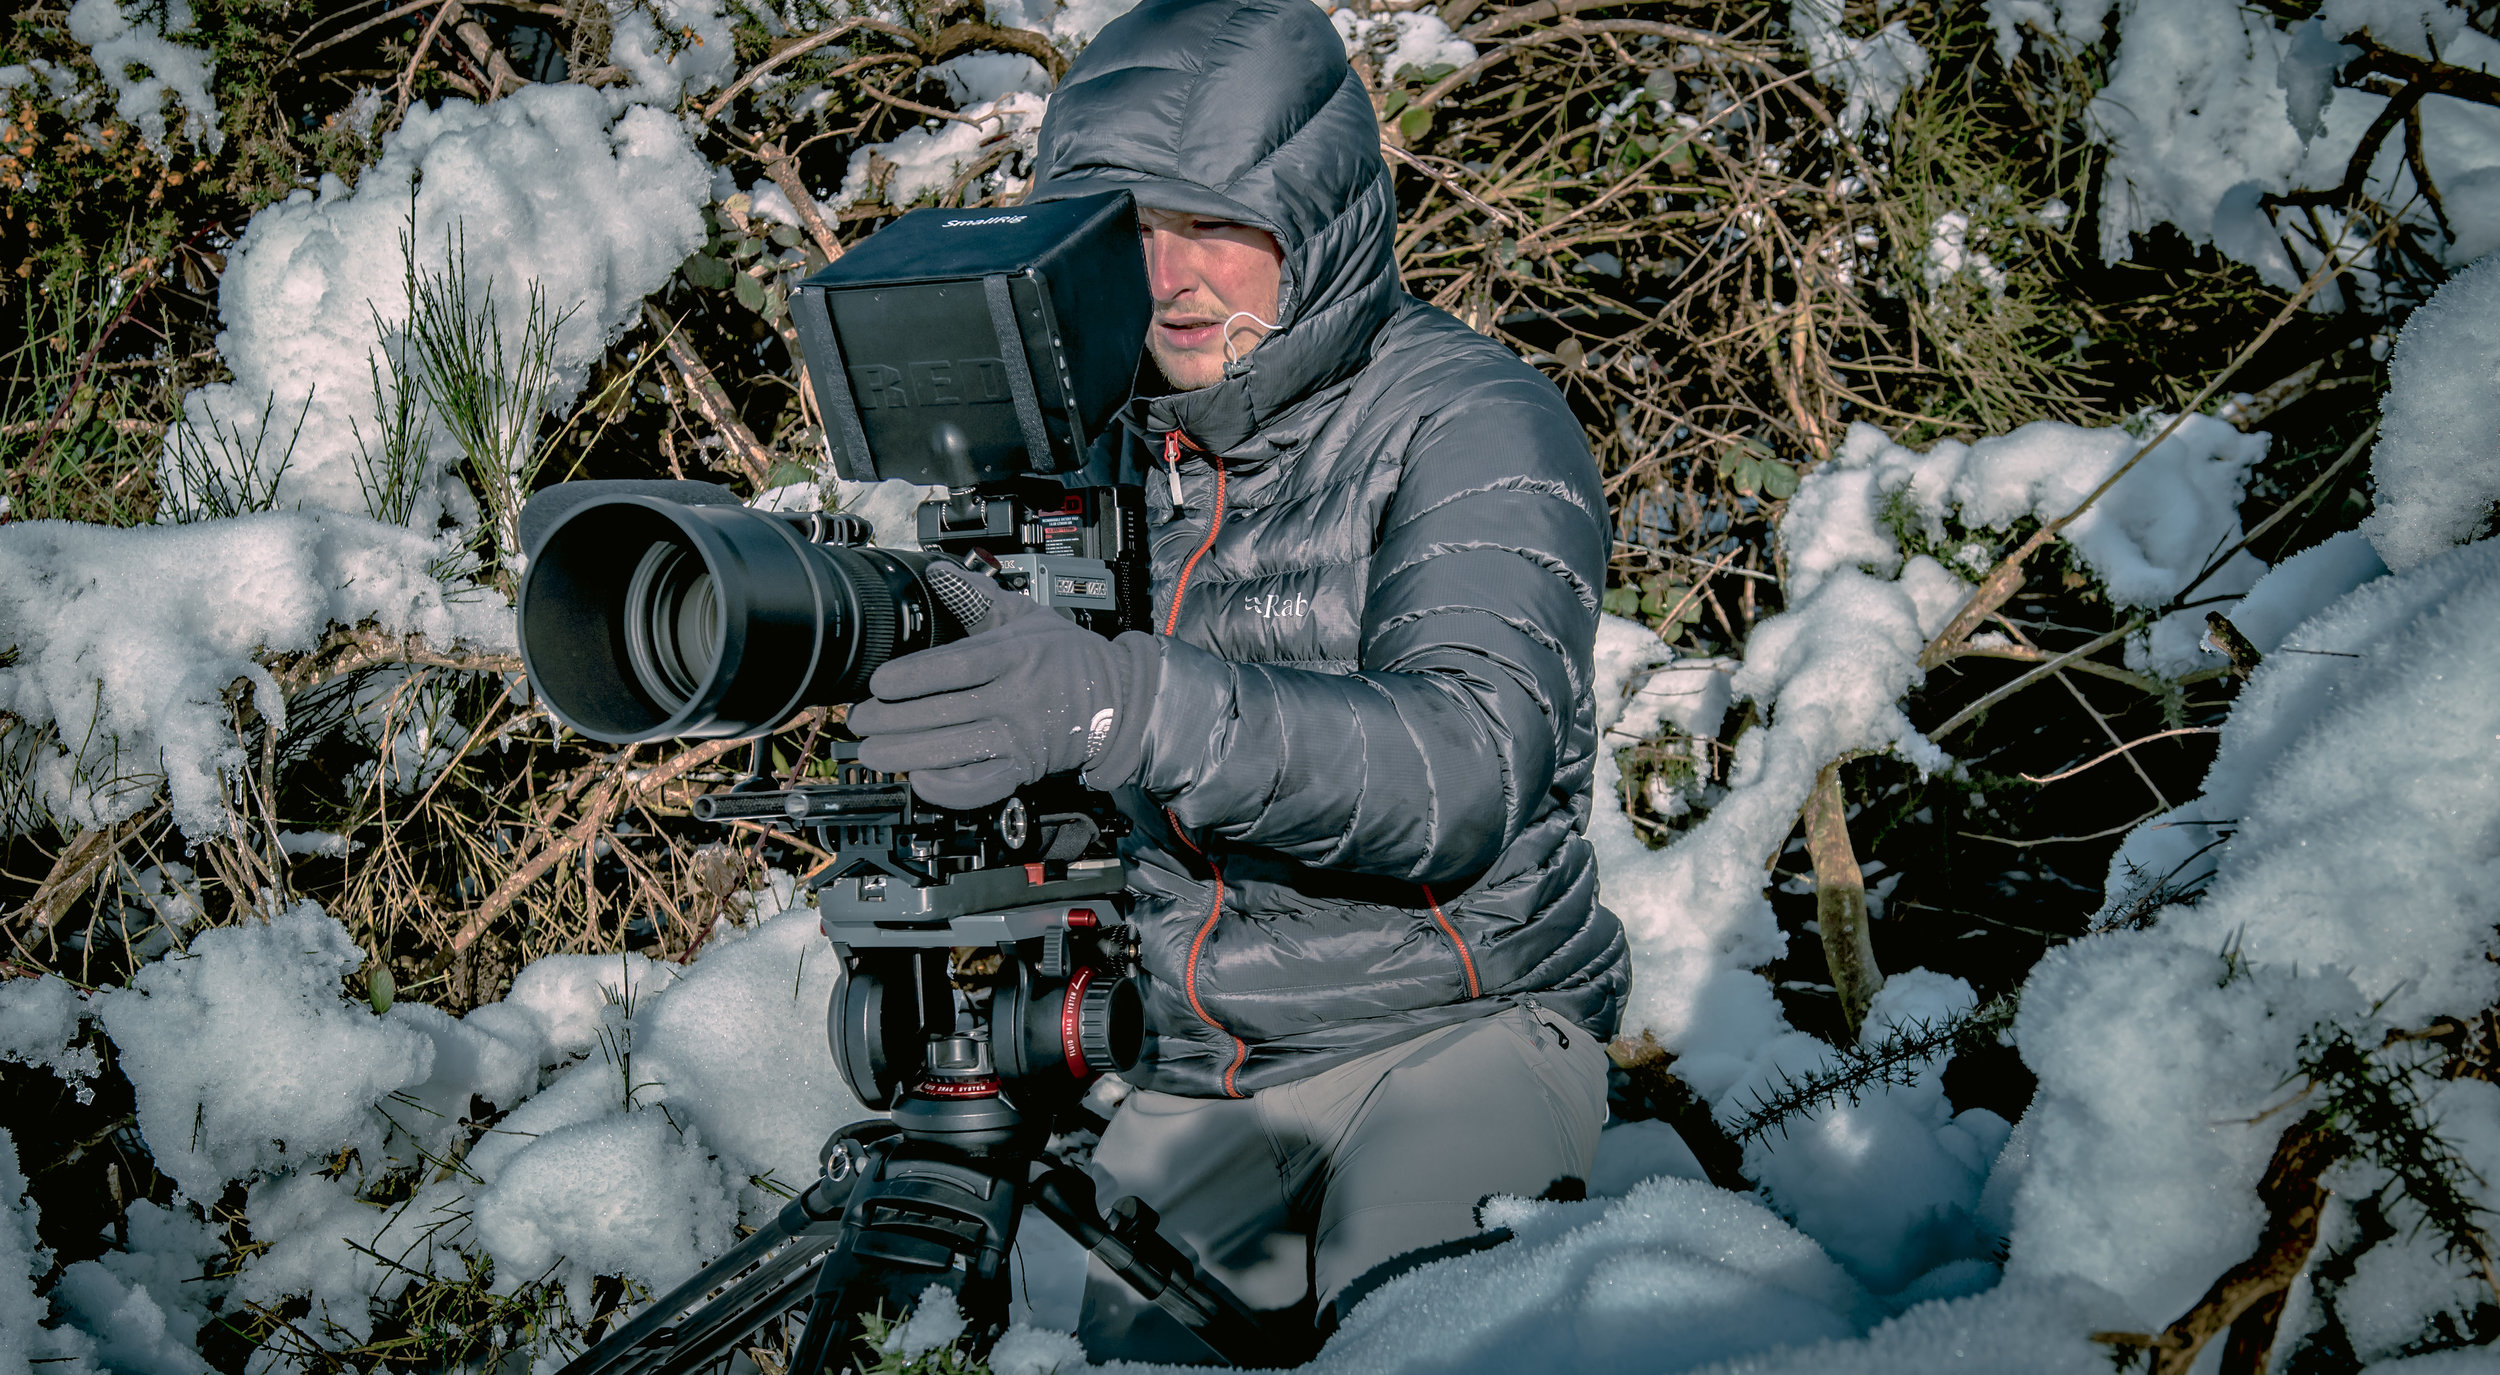 Filming In Snow4_1.jpg